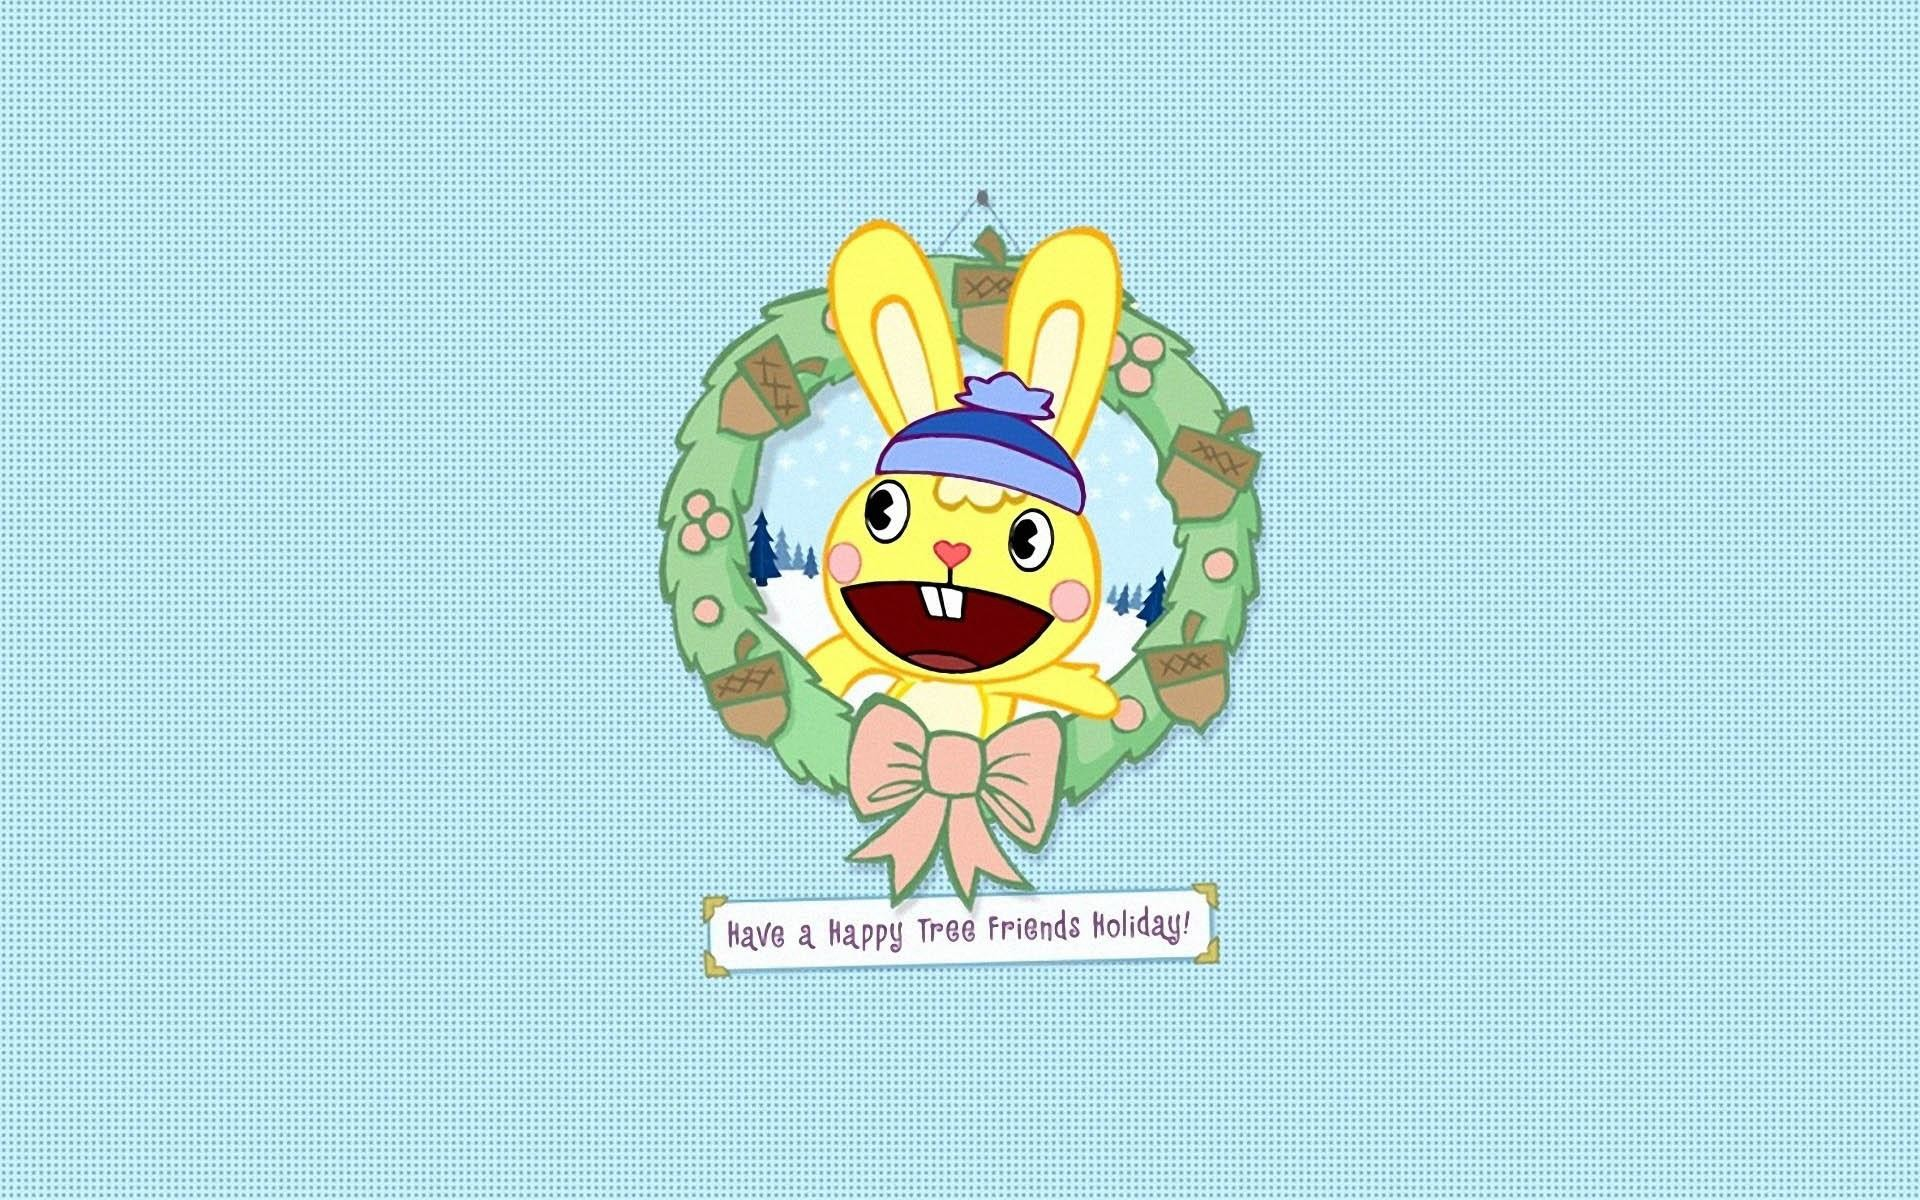 1920x1200 Happy Tree Friends Wallpaper 14 - 1920 X 1200